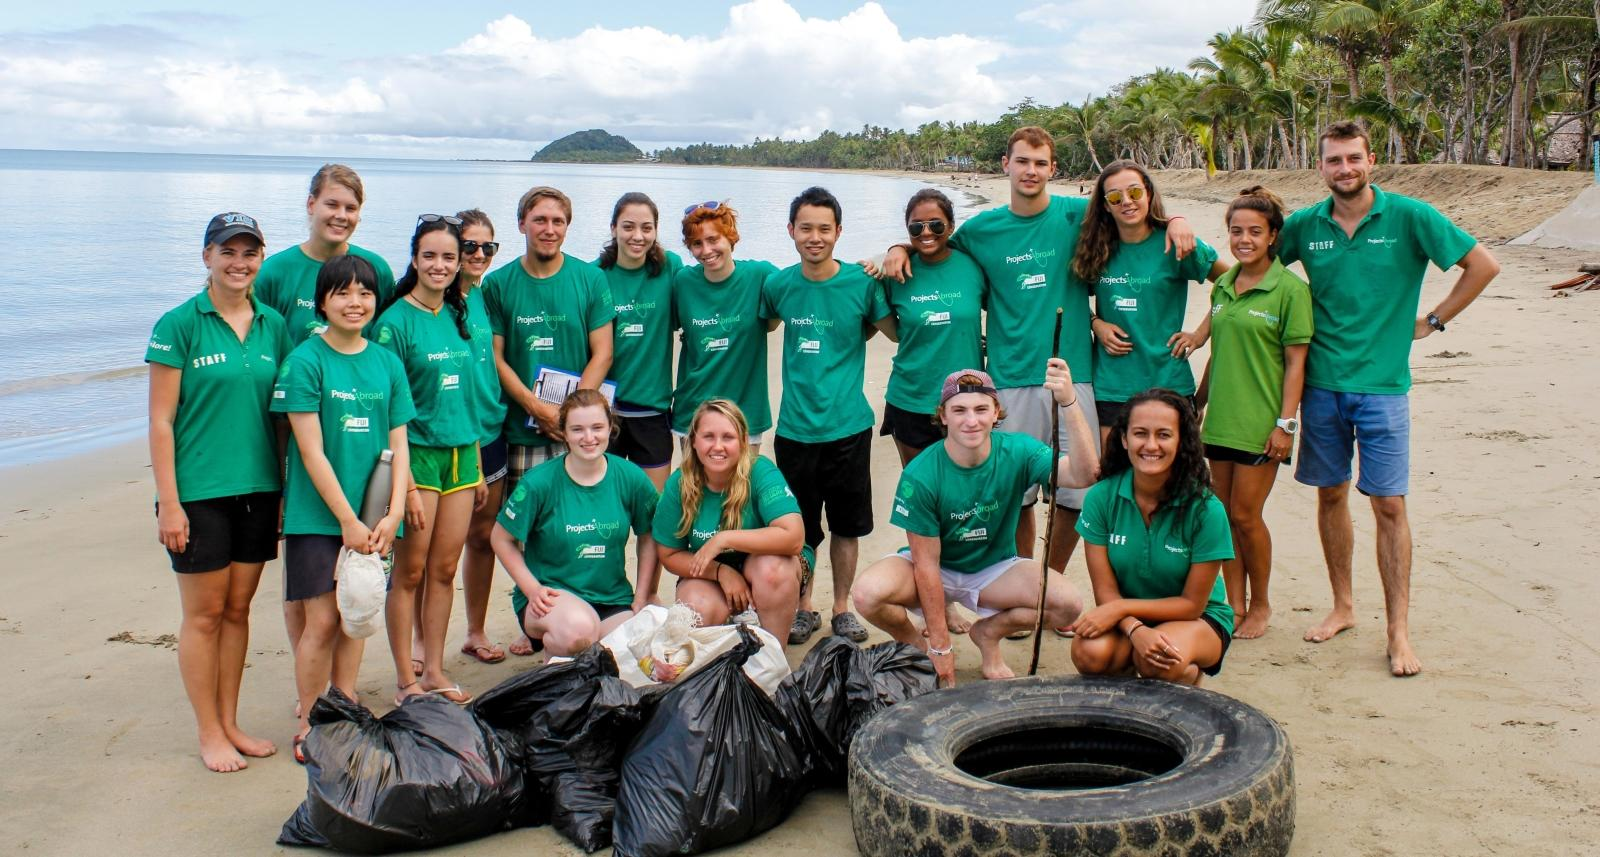 rojects Abroad volunteers pose after a successful beach clean up in Fiji